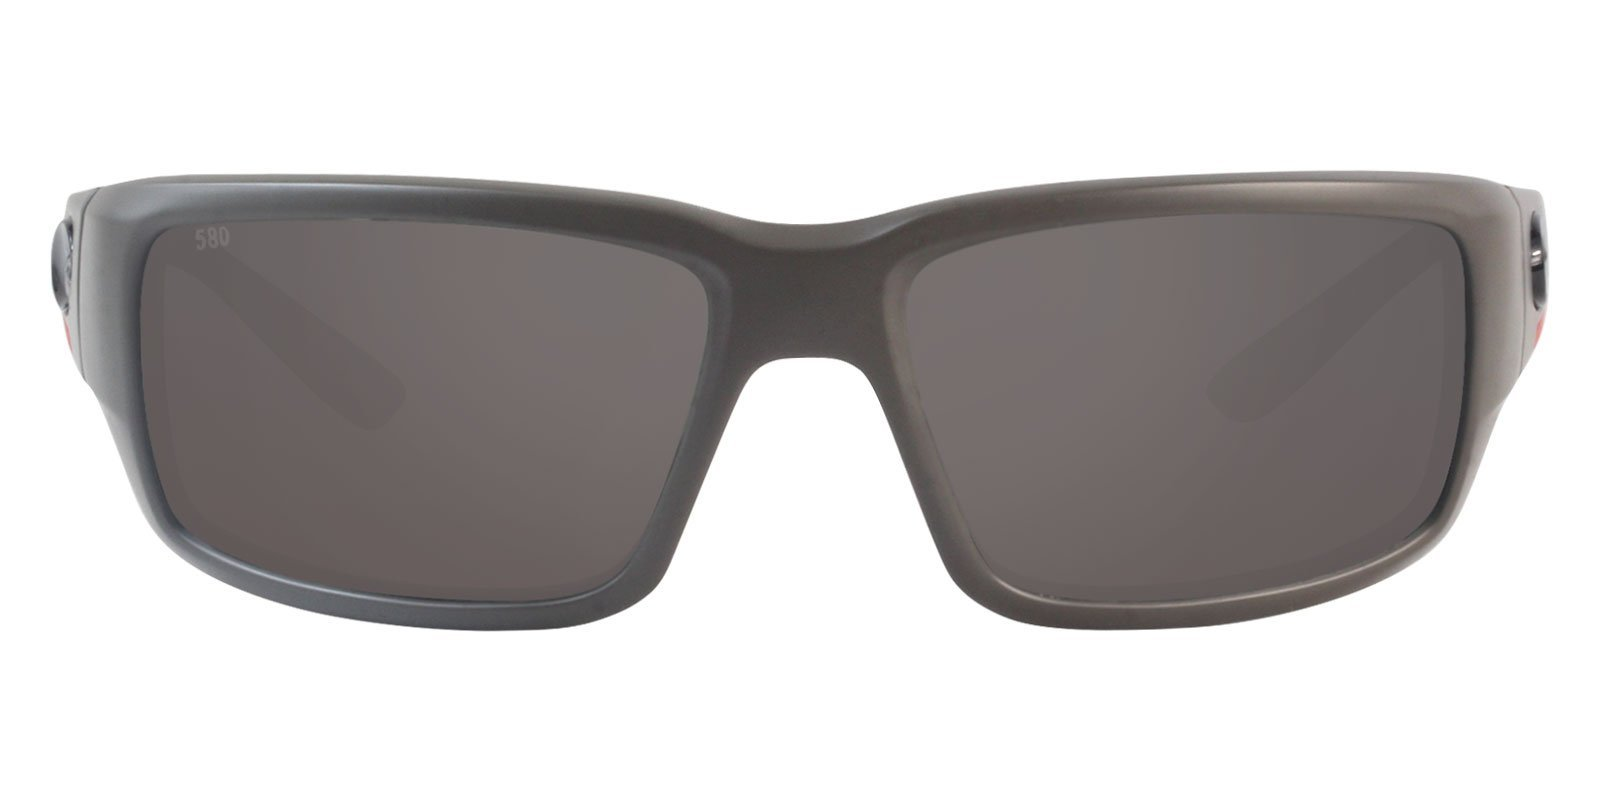 Costa Del Mar - Fantail Gray/Gray Mirror Polarized Wrap Men Sunglasses - 60mm-Sunglasses-Designer Eyes